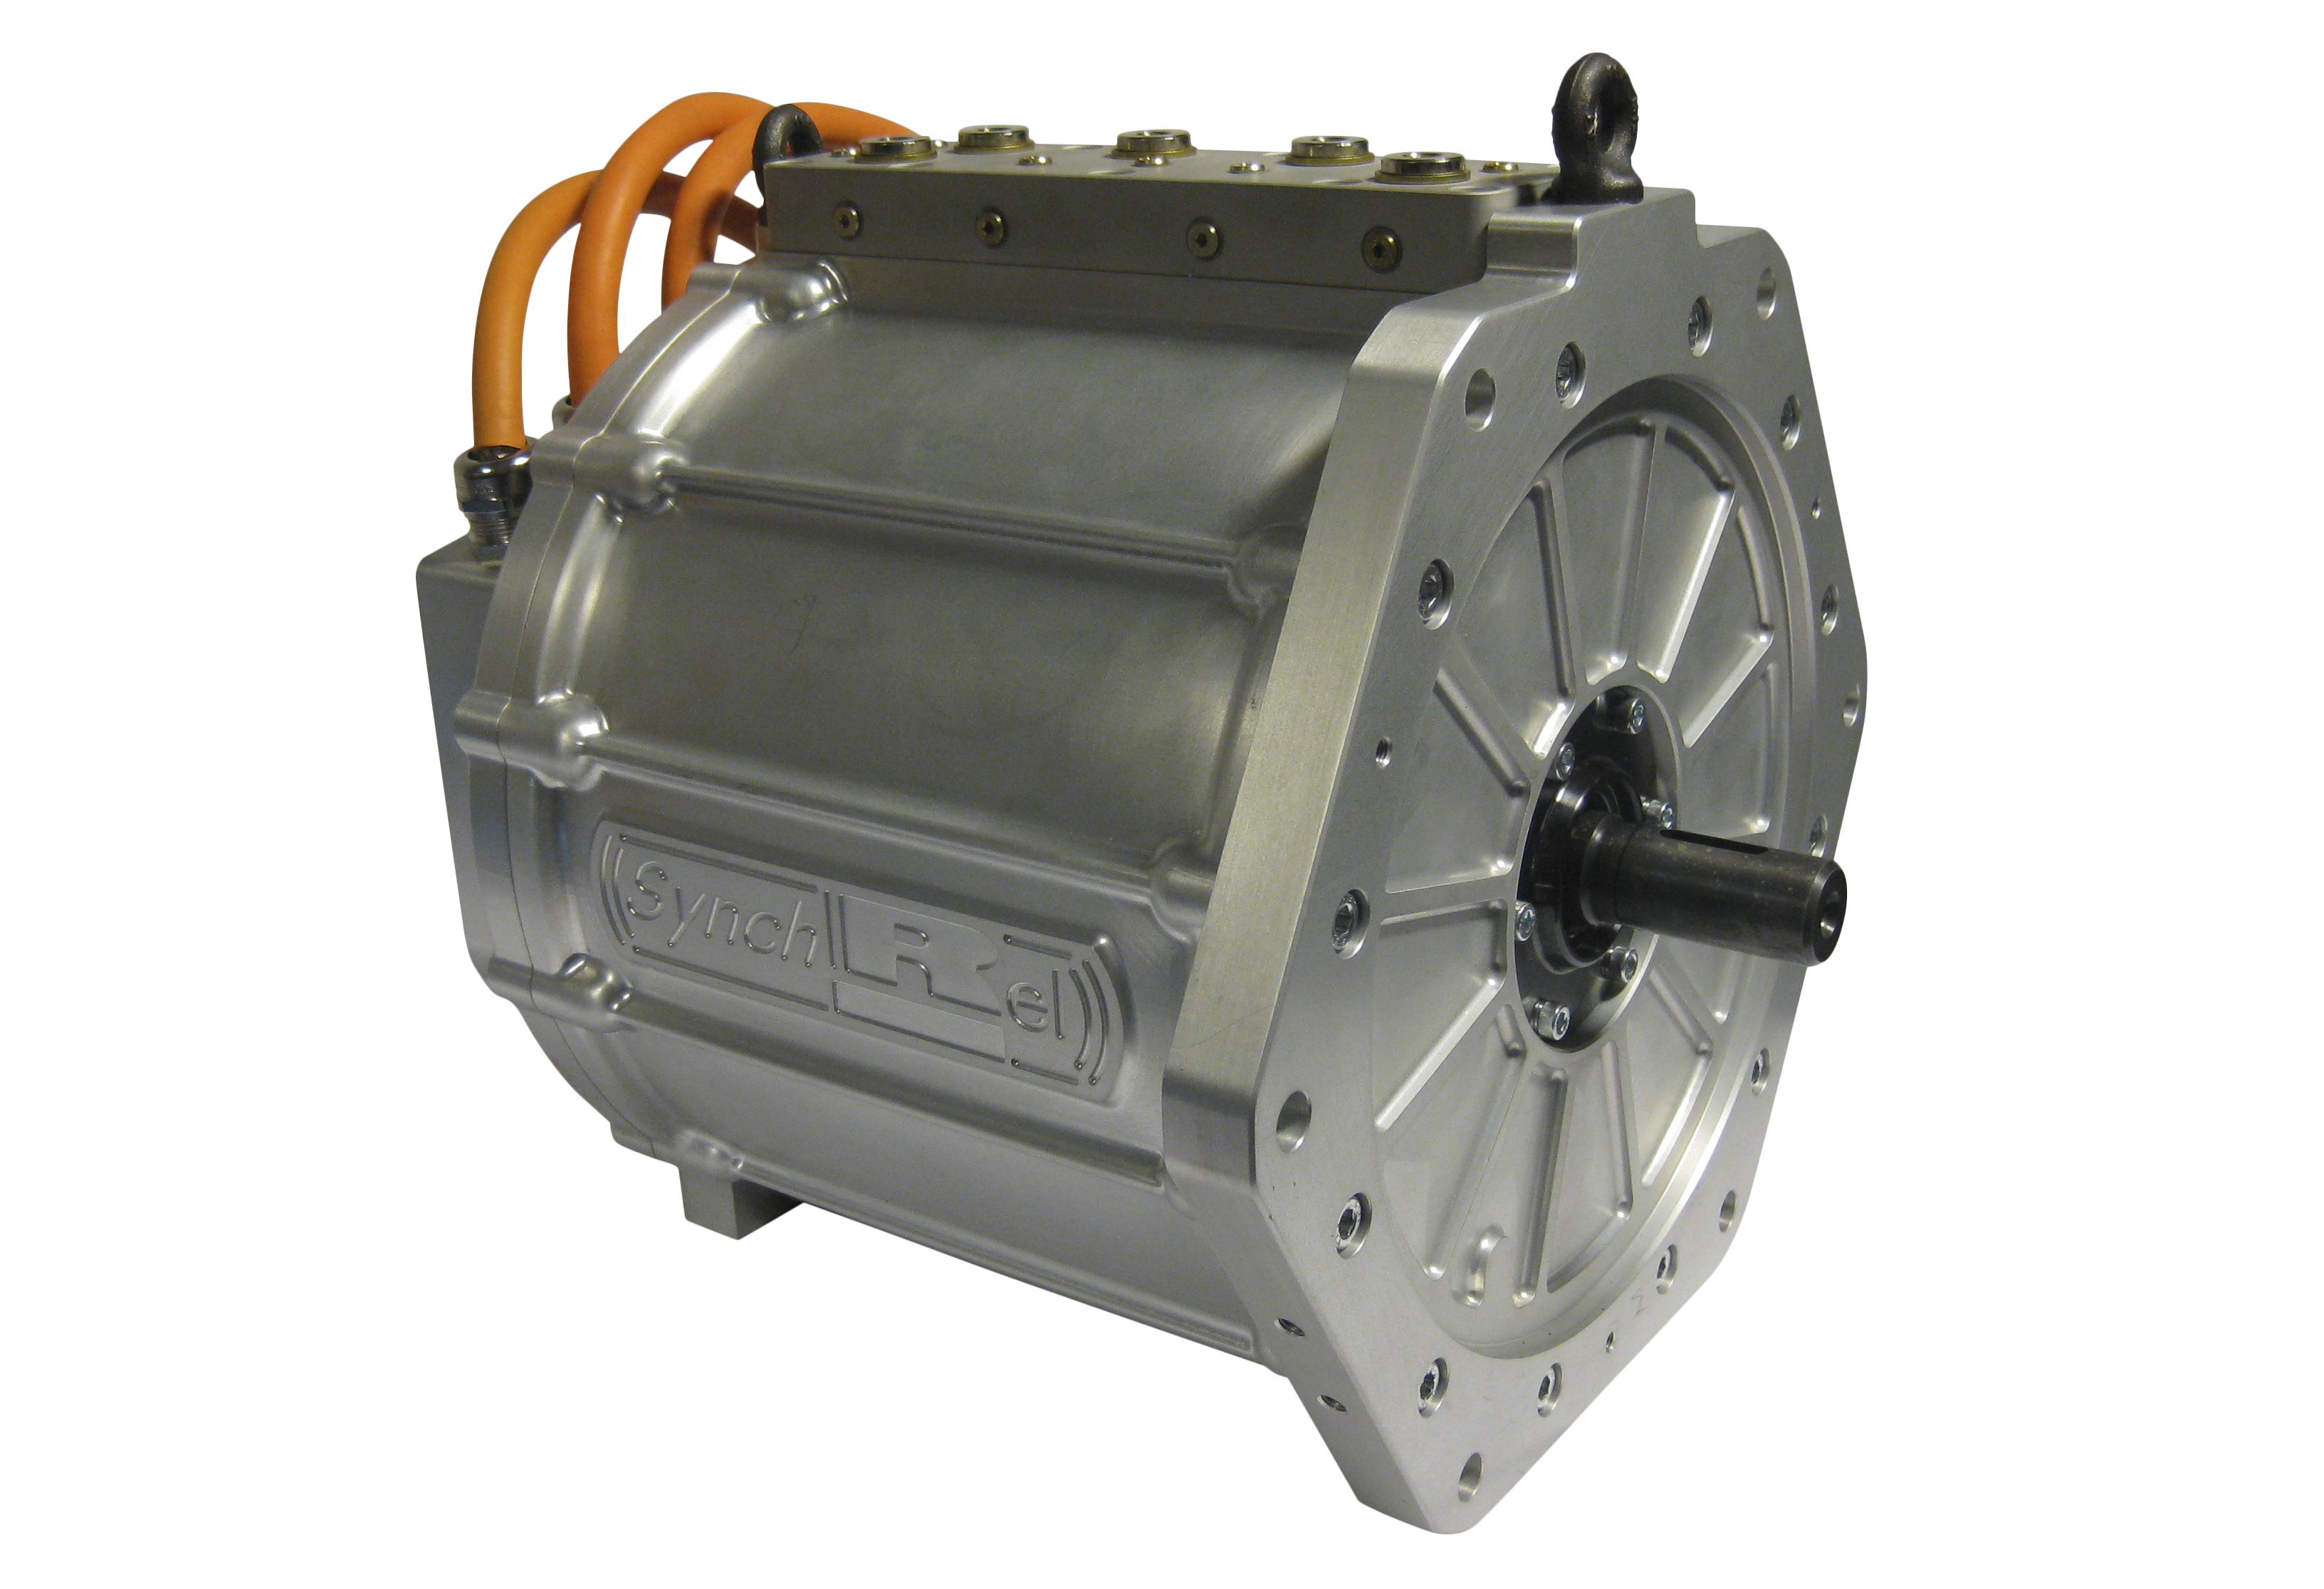 Ricardo Develops Next Generation Electric Vehicle Motor